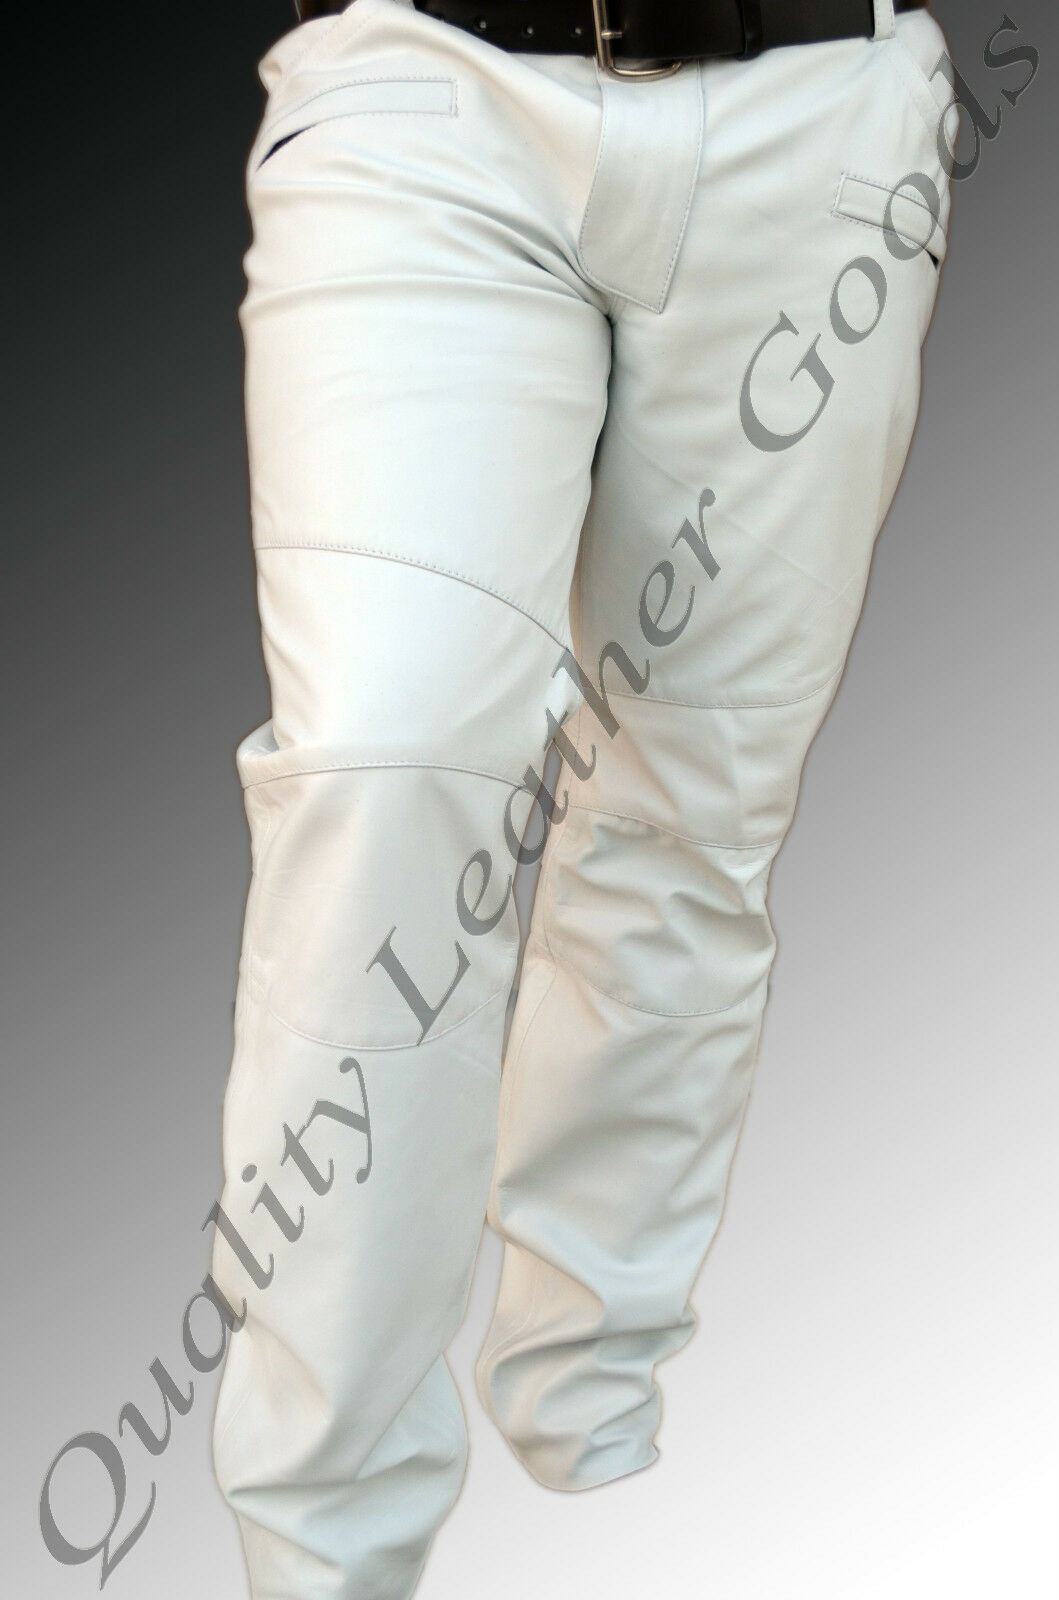 MENS SYNTHETIC LEATHER JEANS THIGH FIT  LUXURY PANTS TROUSERS WHITE blueF CLUB